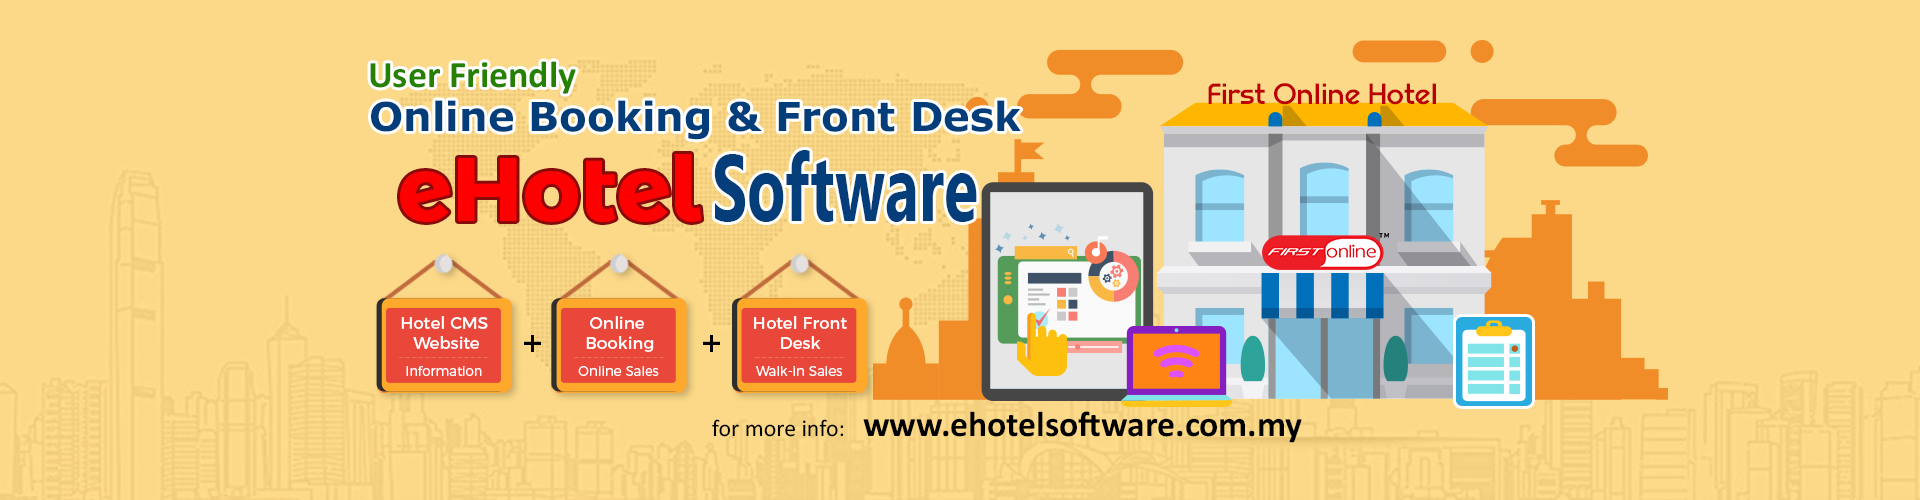 eHotel Software